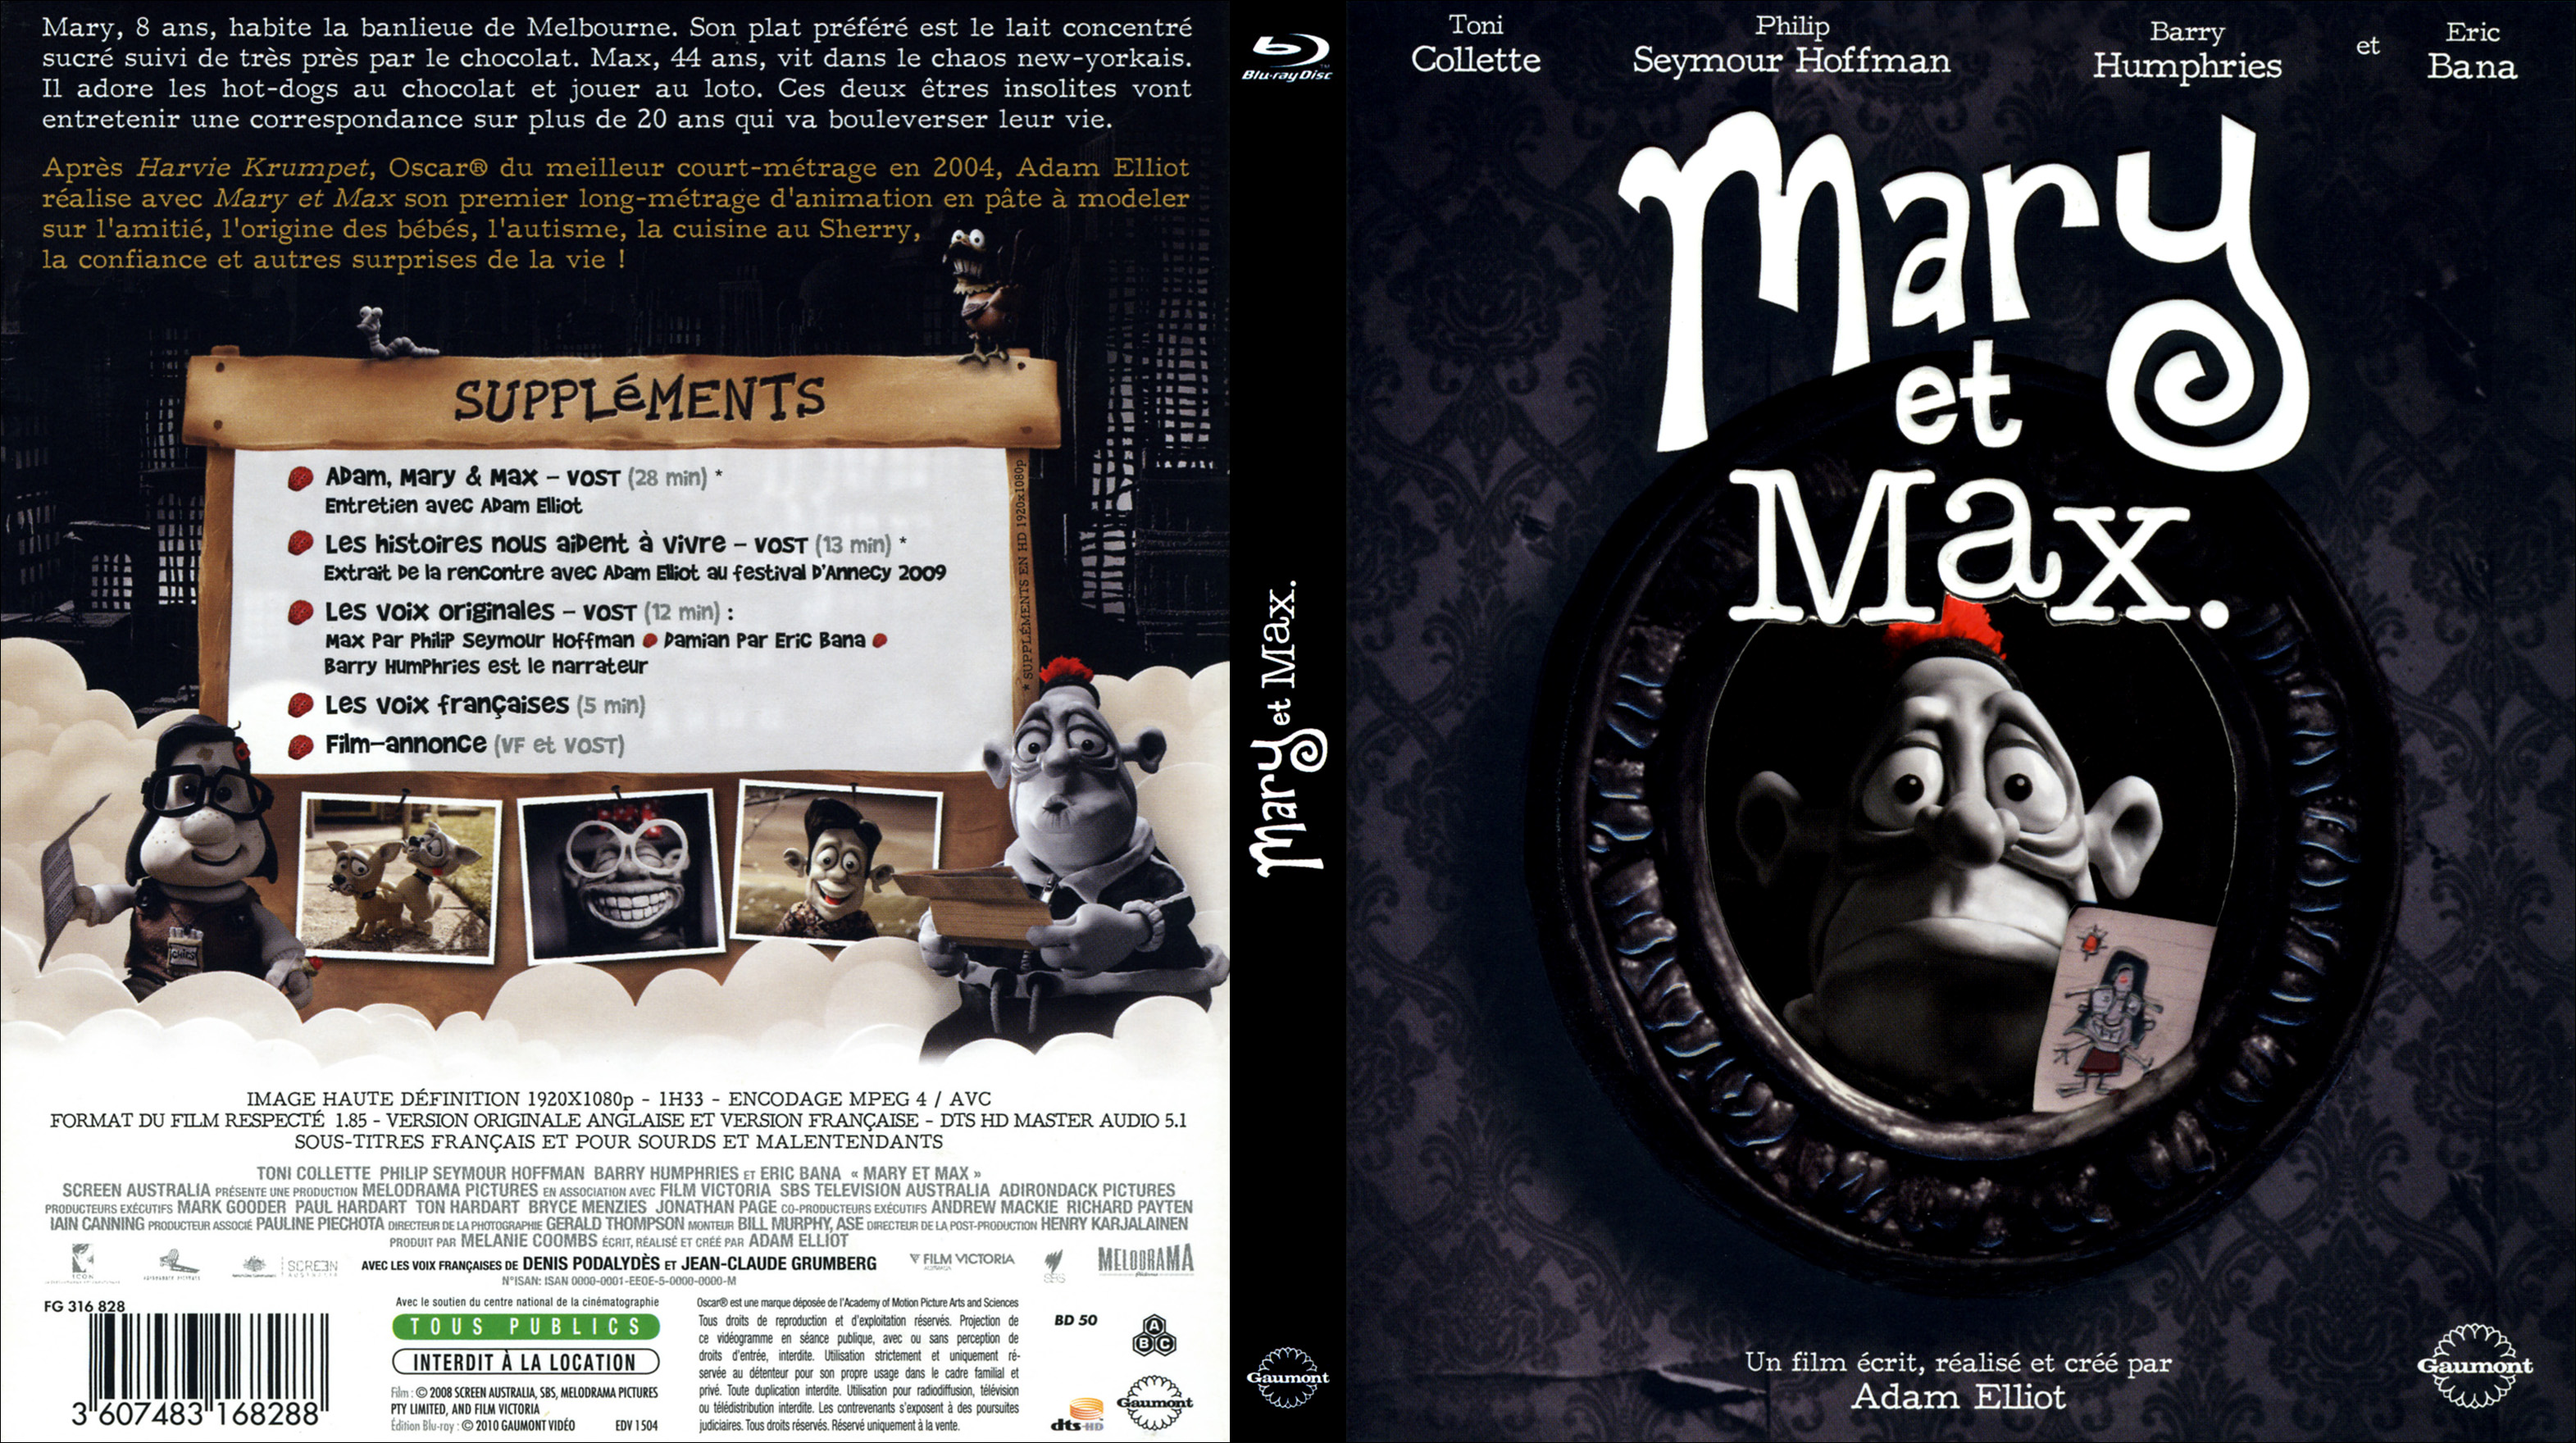 Covers Box Sk Mary And Max 2009 Imdb Dl High Quality Dvd Blueray Movie